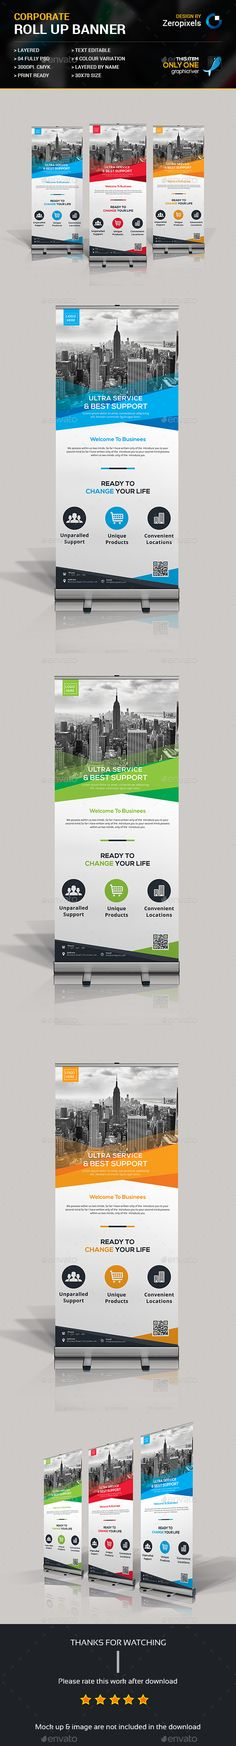 Corporate Business Roll-Up Banner Template PSD. Download here: http://graphicriver.net/item/corporate-business-roll-up-banner/15773507?ref=ksioks